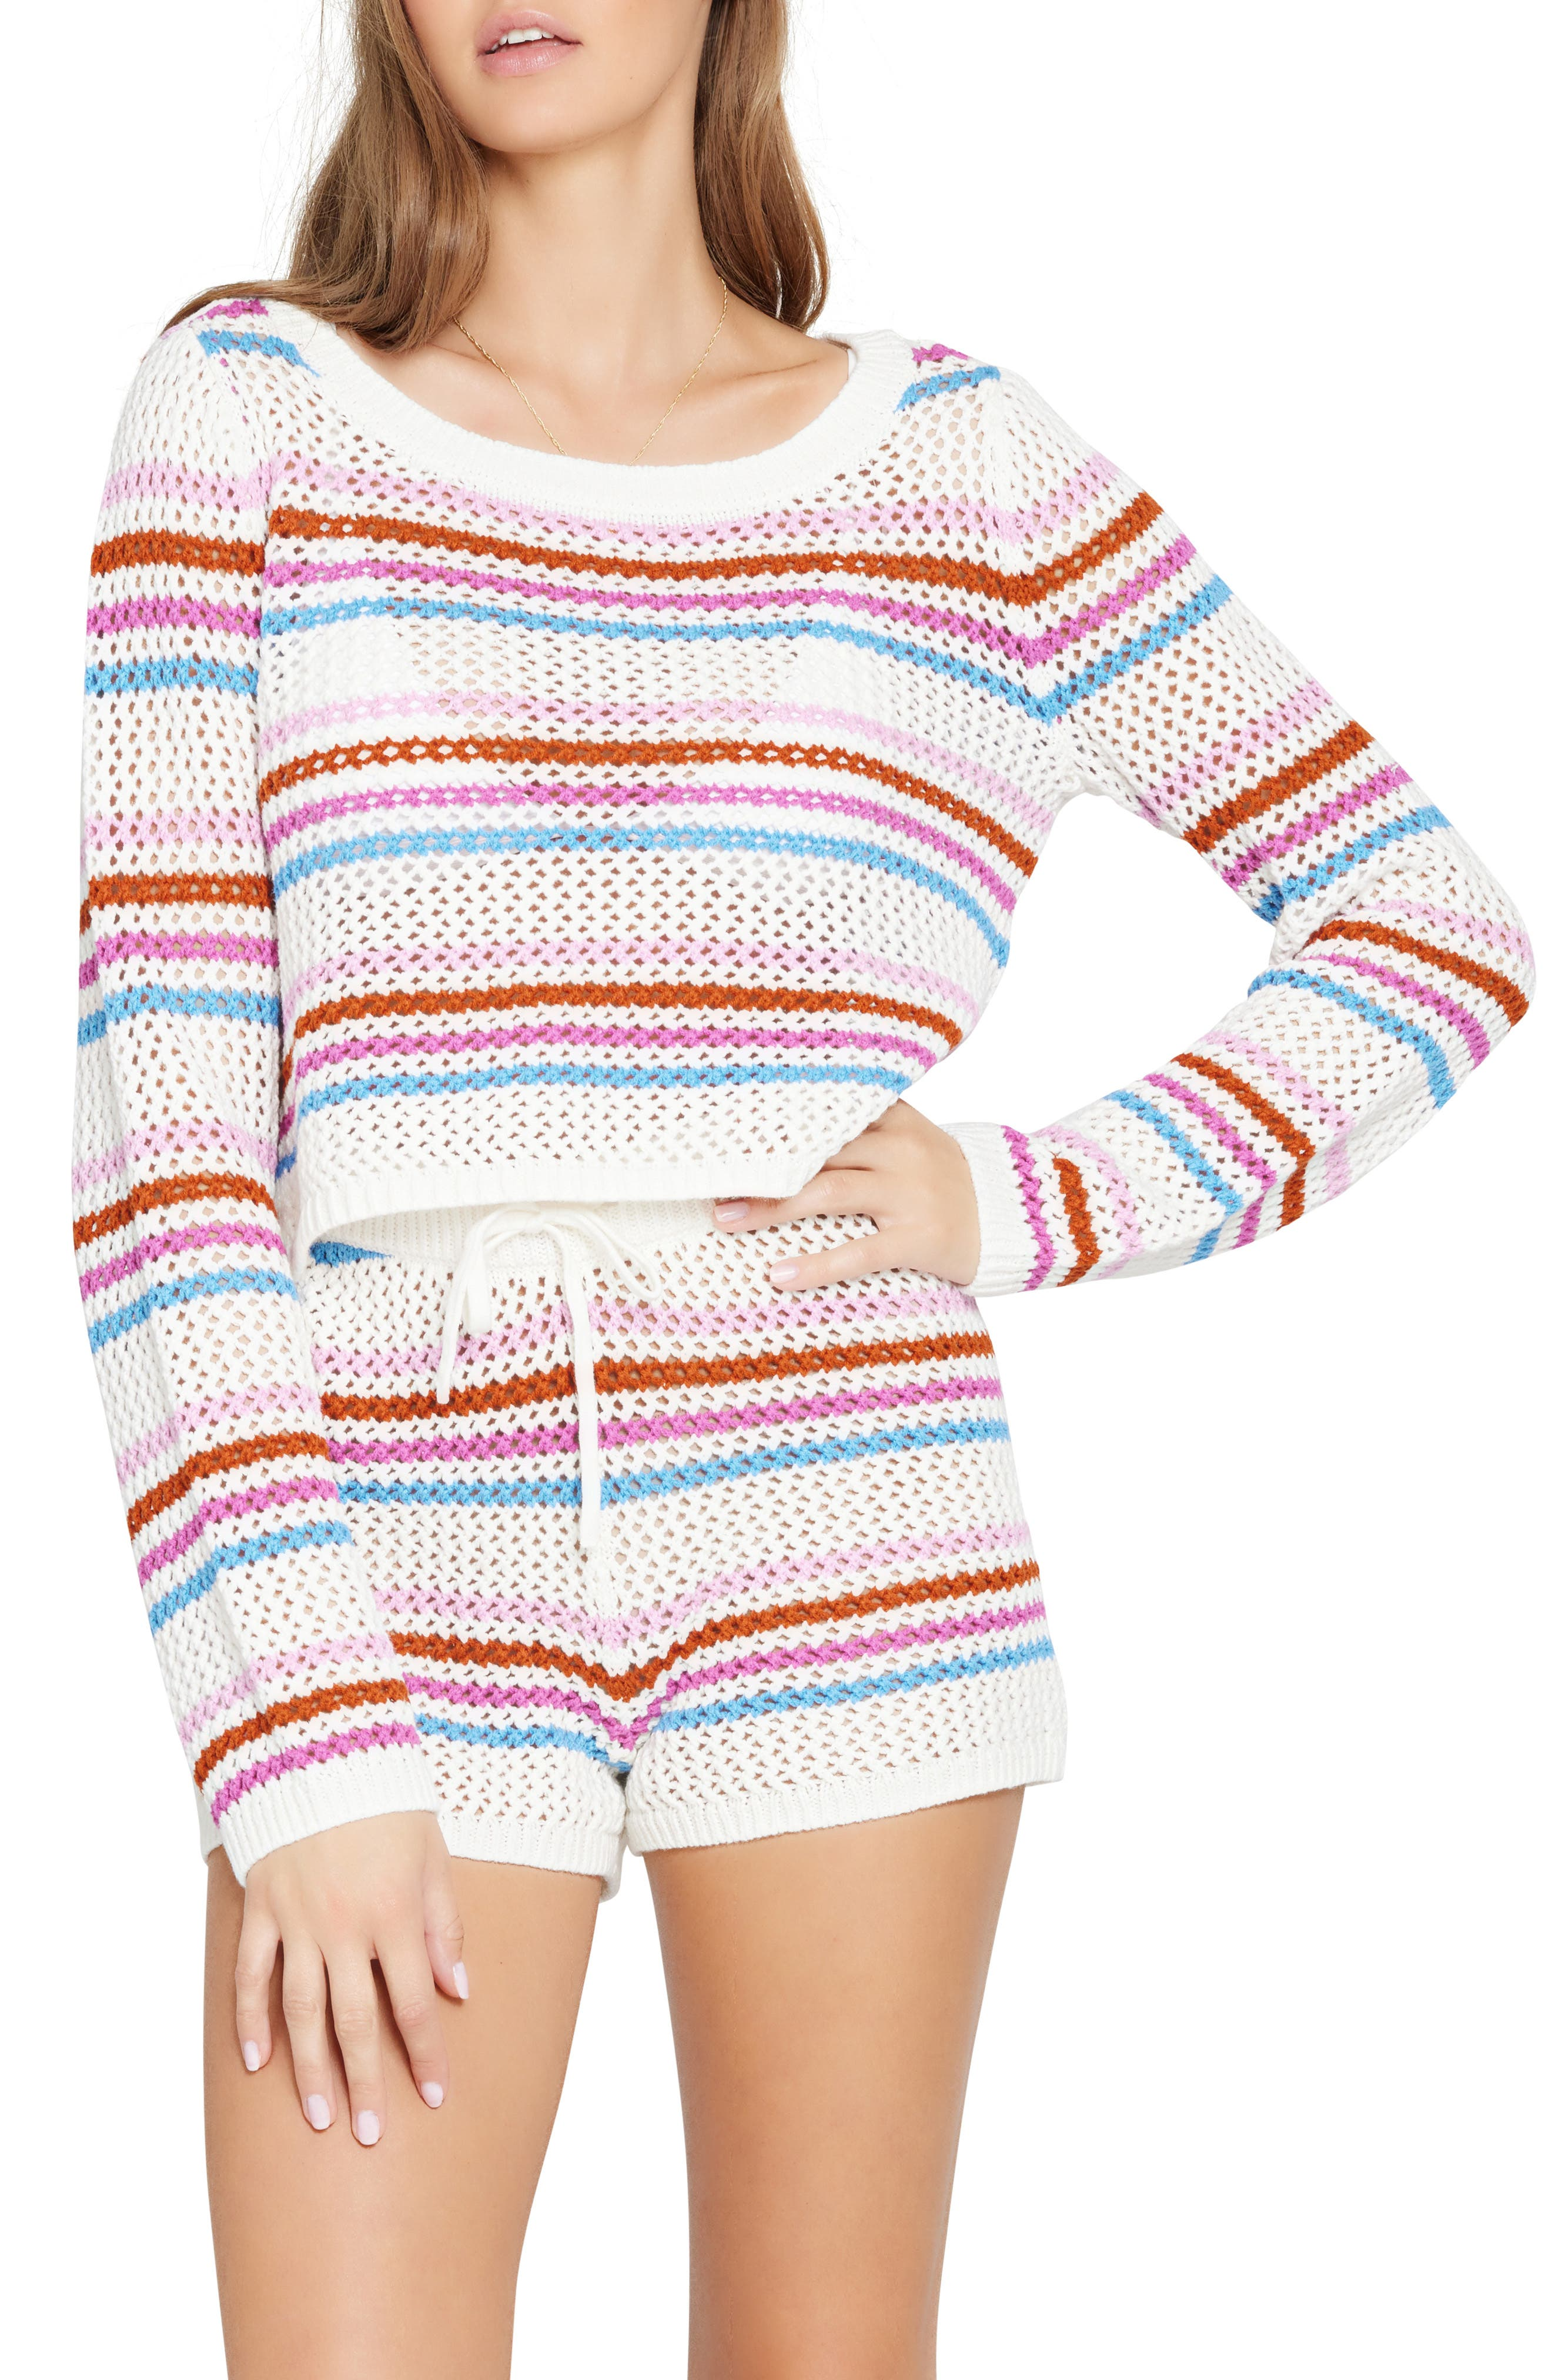 Women's L Space On The Horizon Crochet Cover-Up Sweater